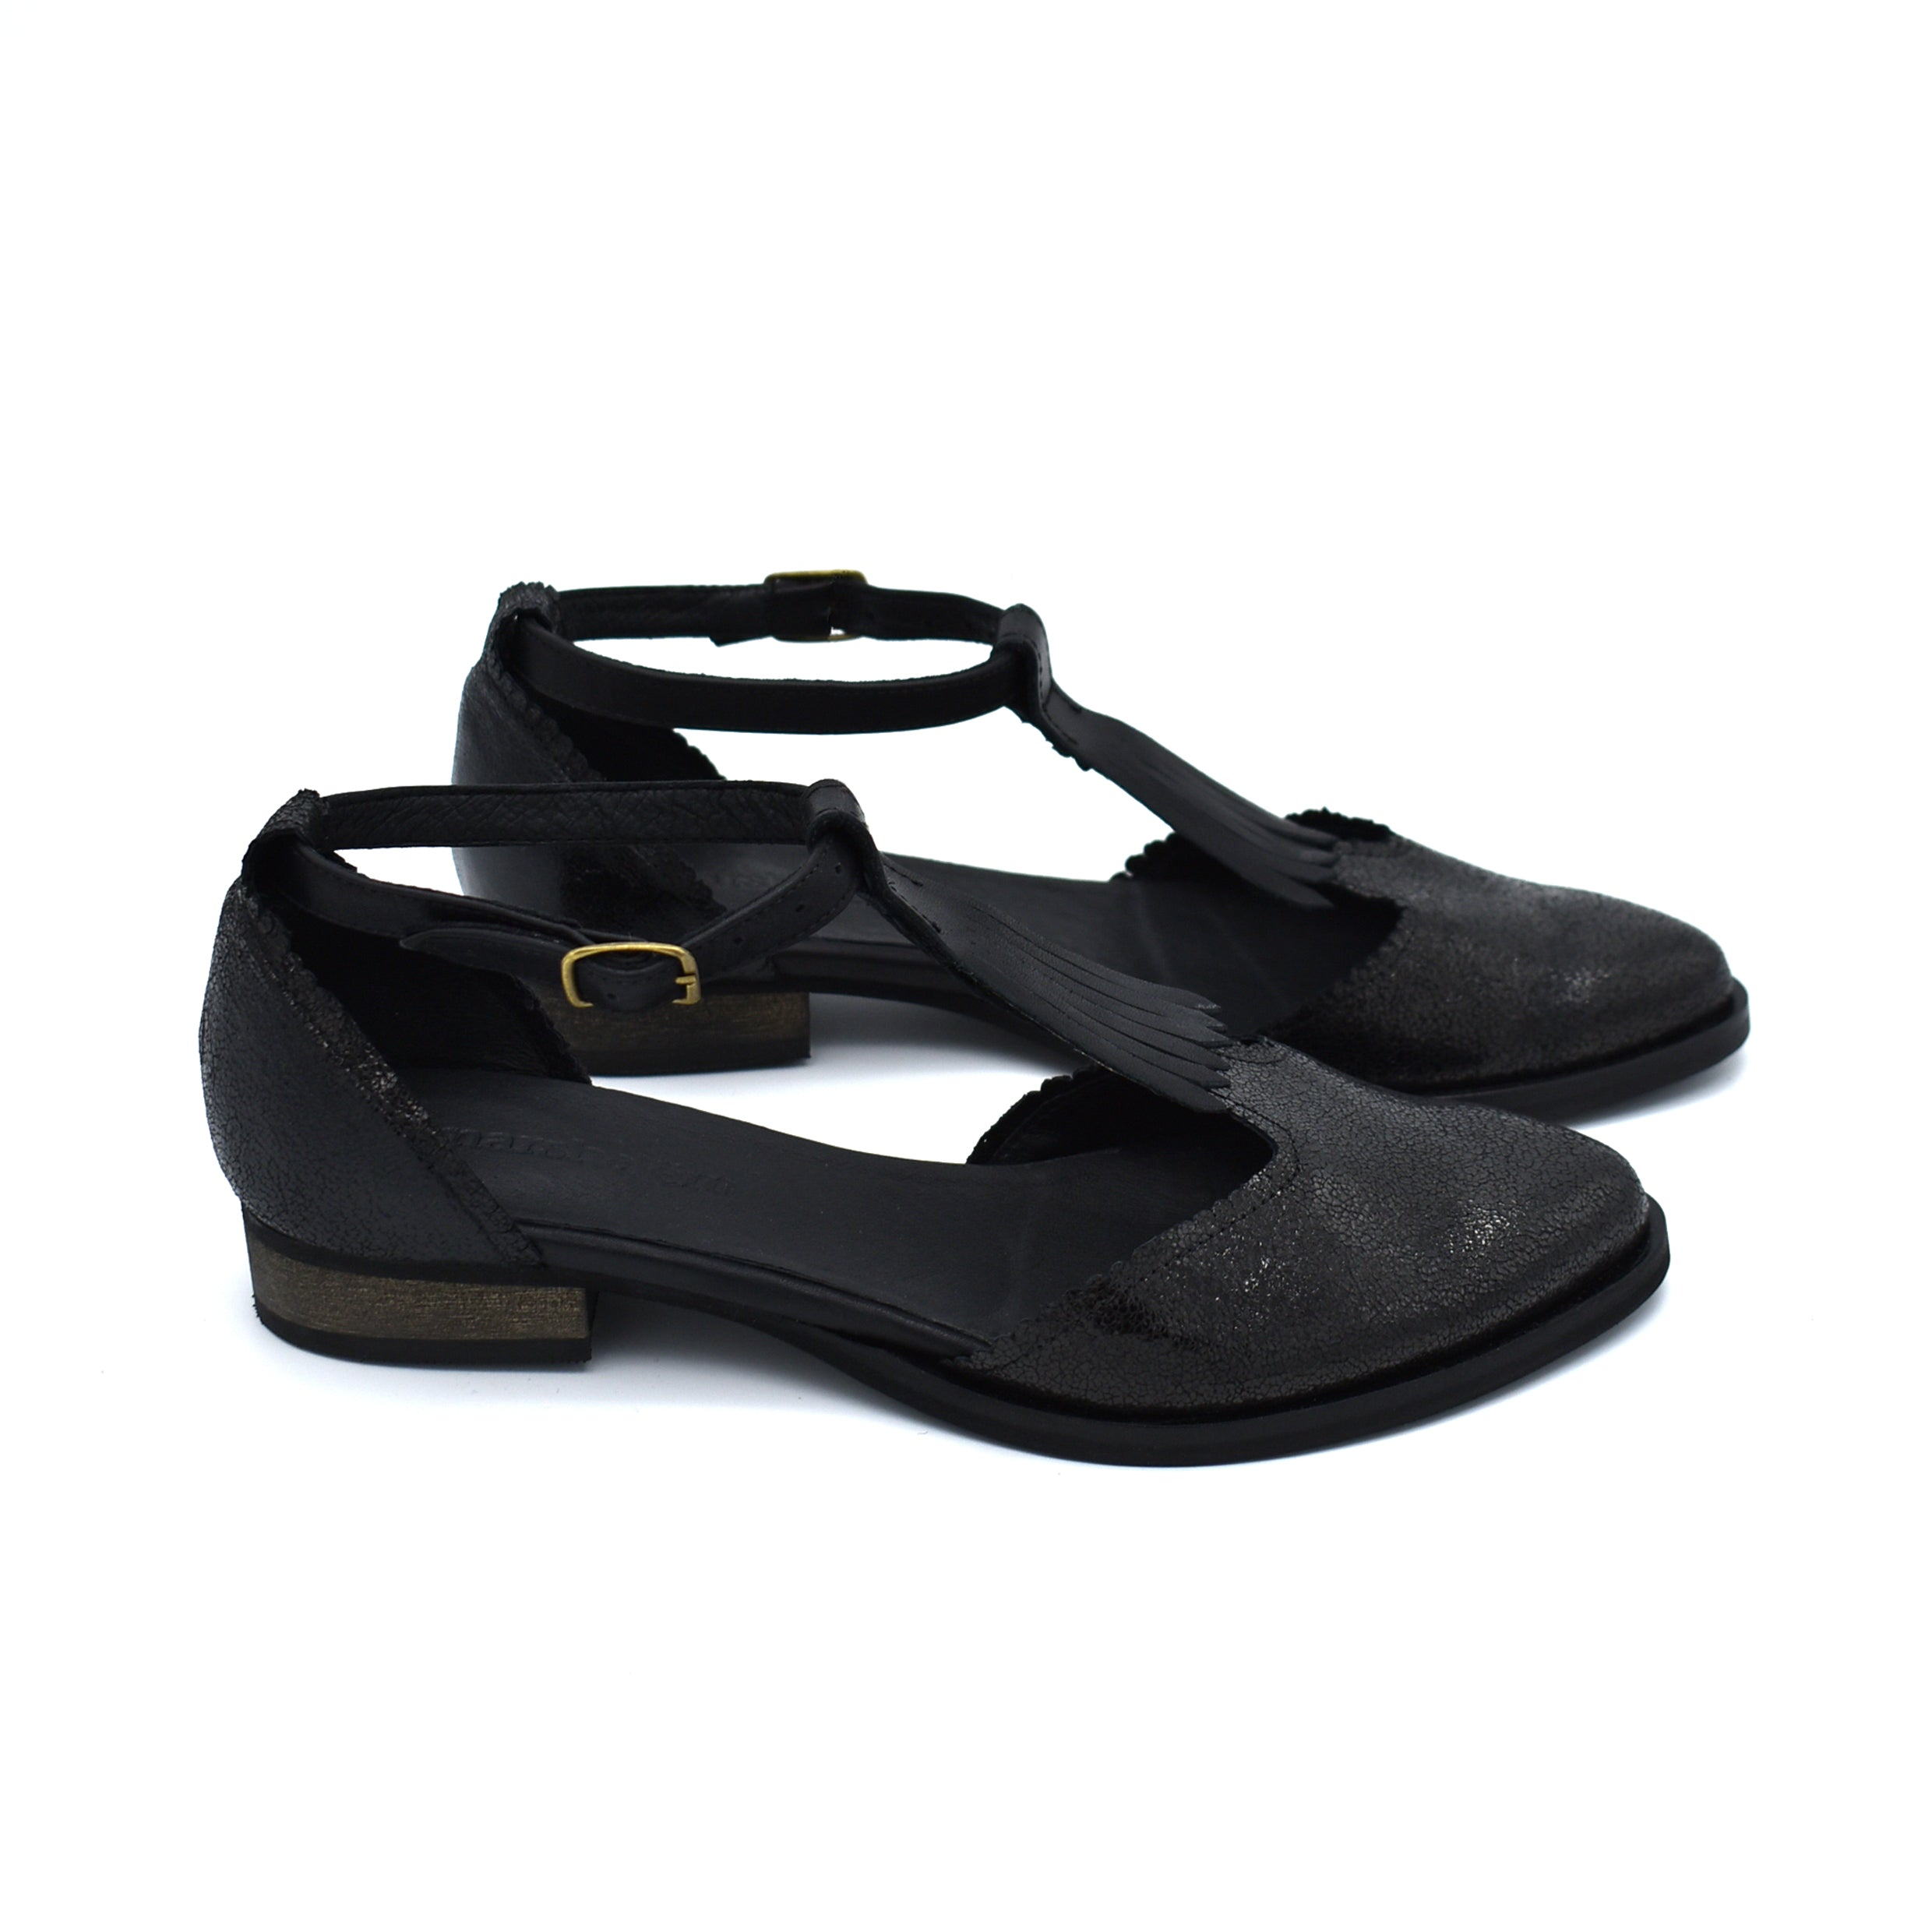 Fringe black leather Nora sandals